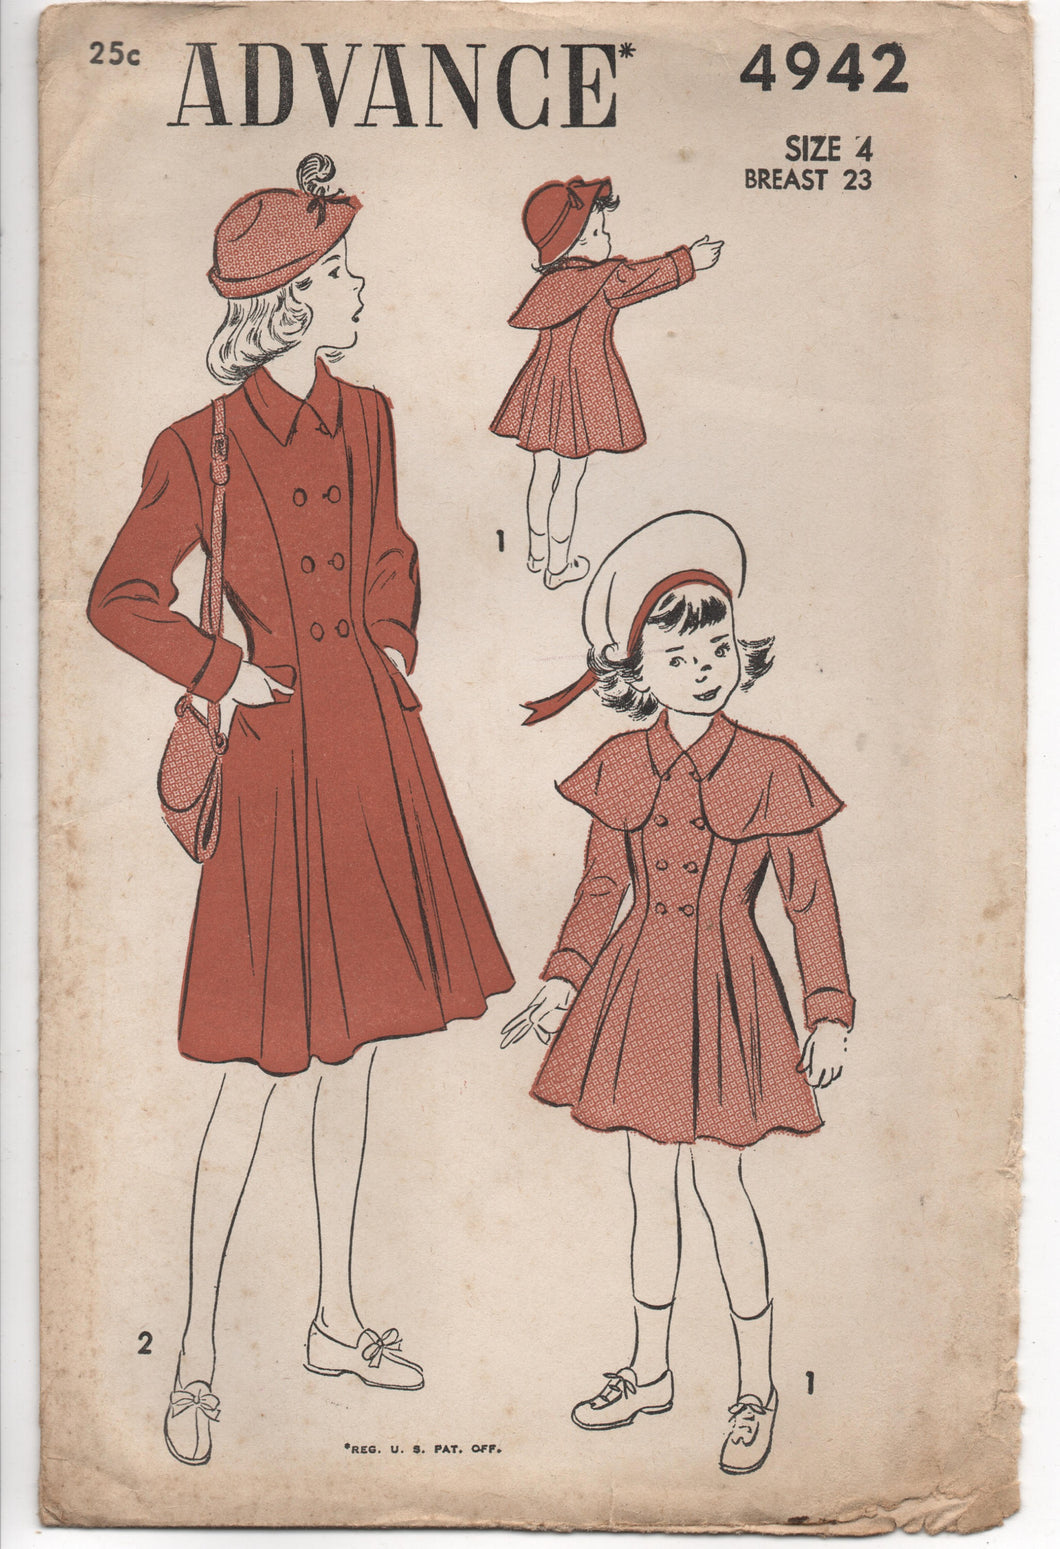 1940's Advance Girl's Princess Coat with Cape - Breast 23